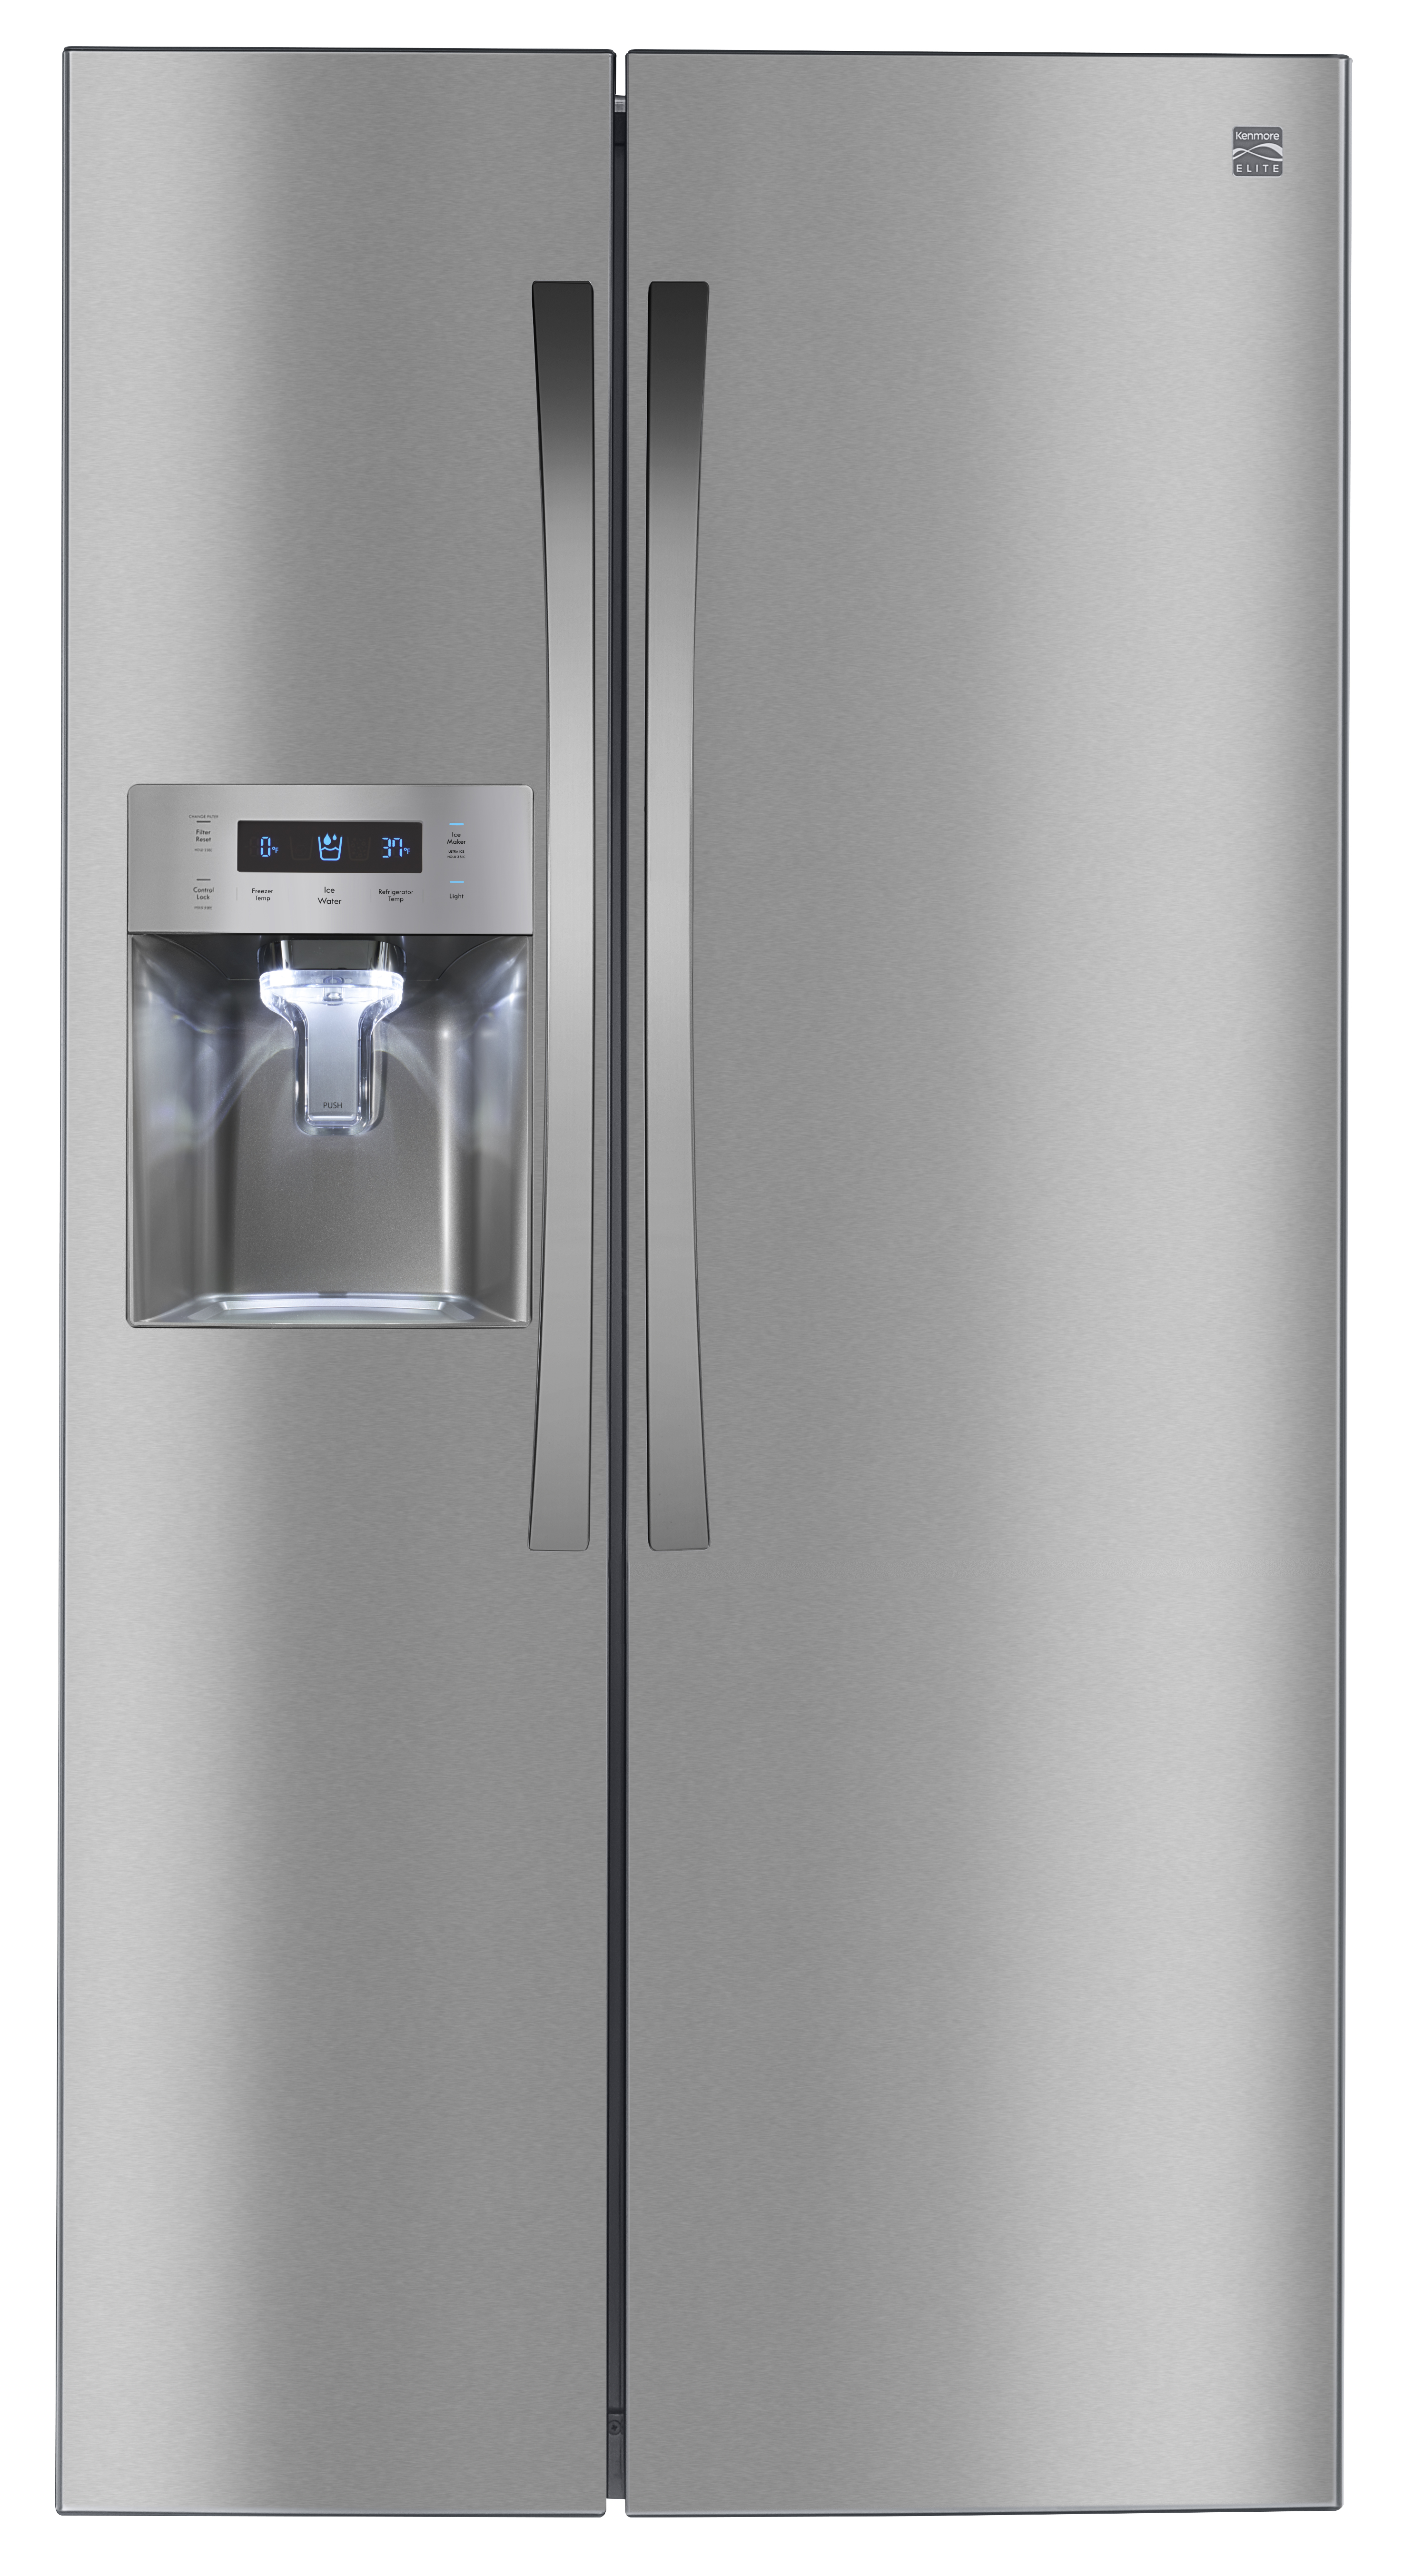 Kenmore Elite 51853 Counter Depth Side By Side Refrigerator Stainless Steel Stainless S Stainless Steel Refrigerator Kenmore Elite Side By Side Refrigerator